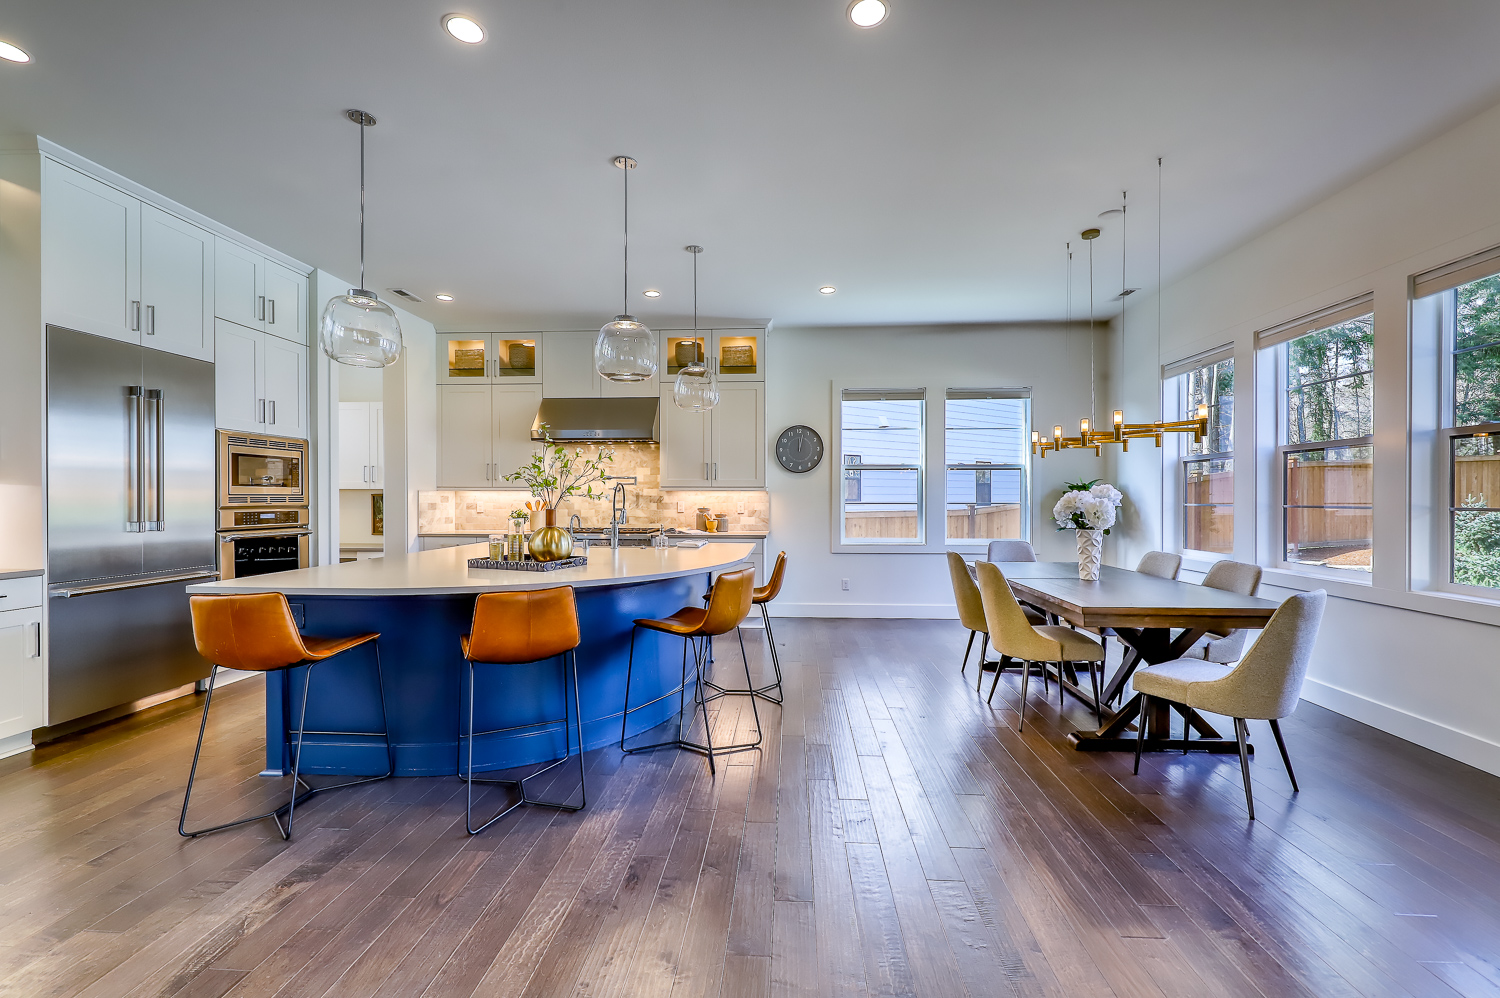 Kitchen Bar and Dining Table